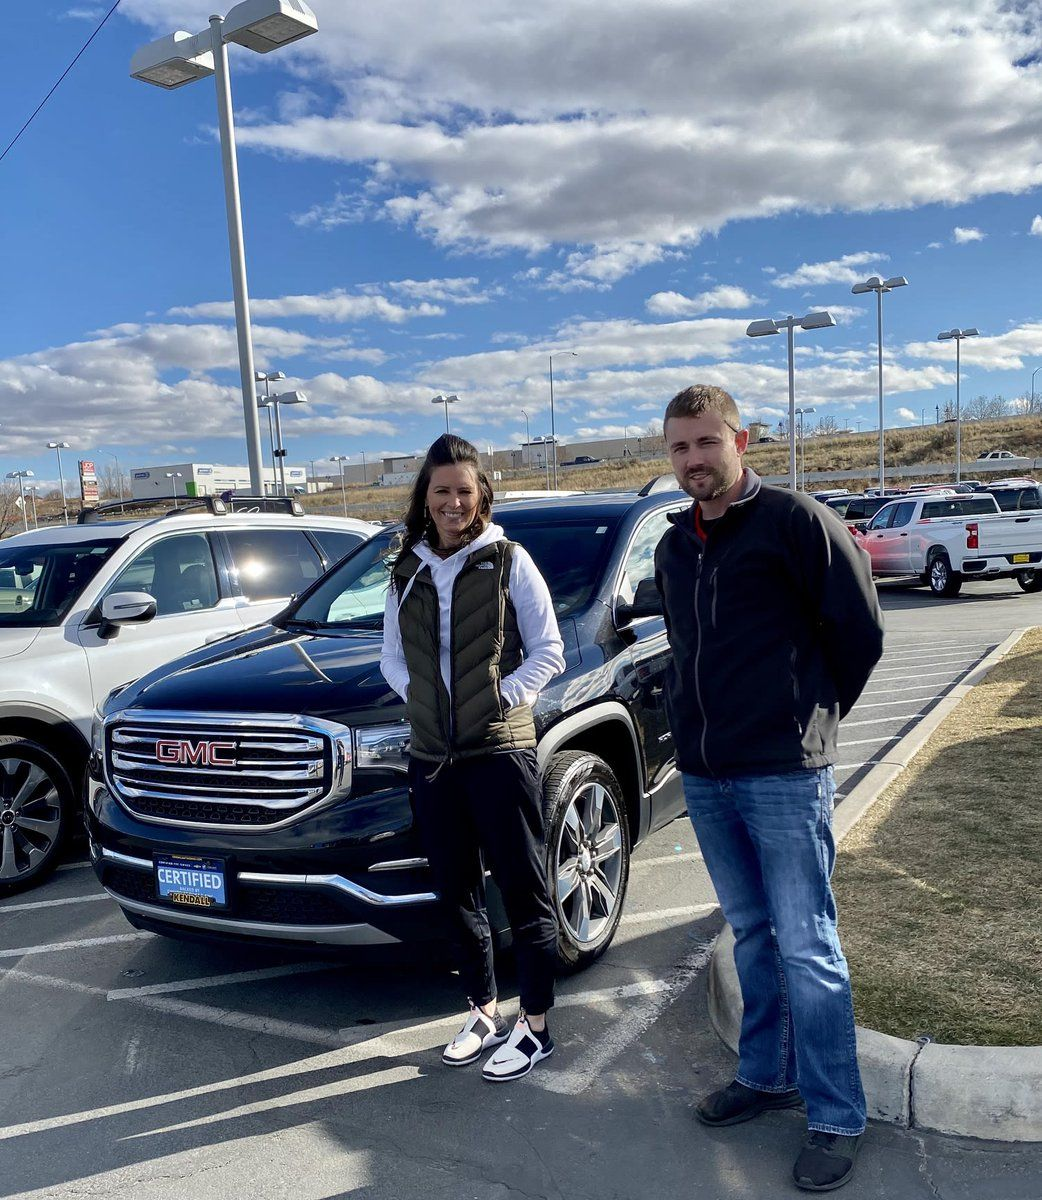 Congrats Travis Kraupp On The Purchase Of Your Gmc Acadia Thanks For Choosing Kendall At The Idaho Center Auto Mall And Trusting Justin Swe In 2020 Gmc Kendall Acadia